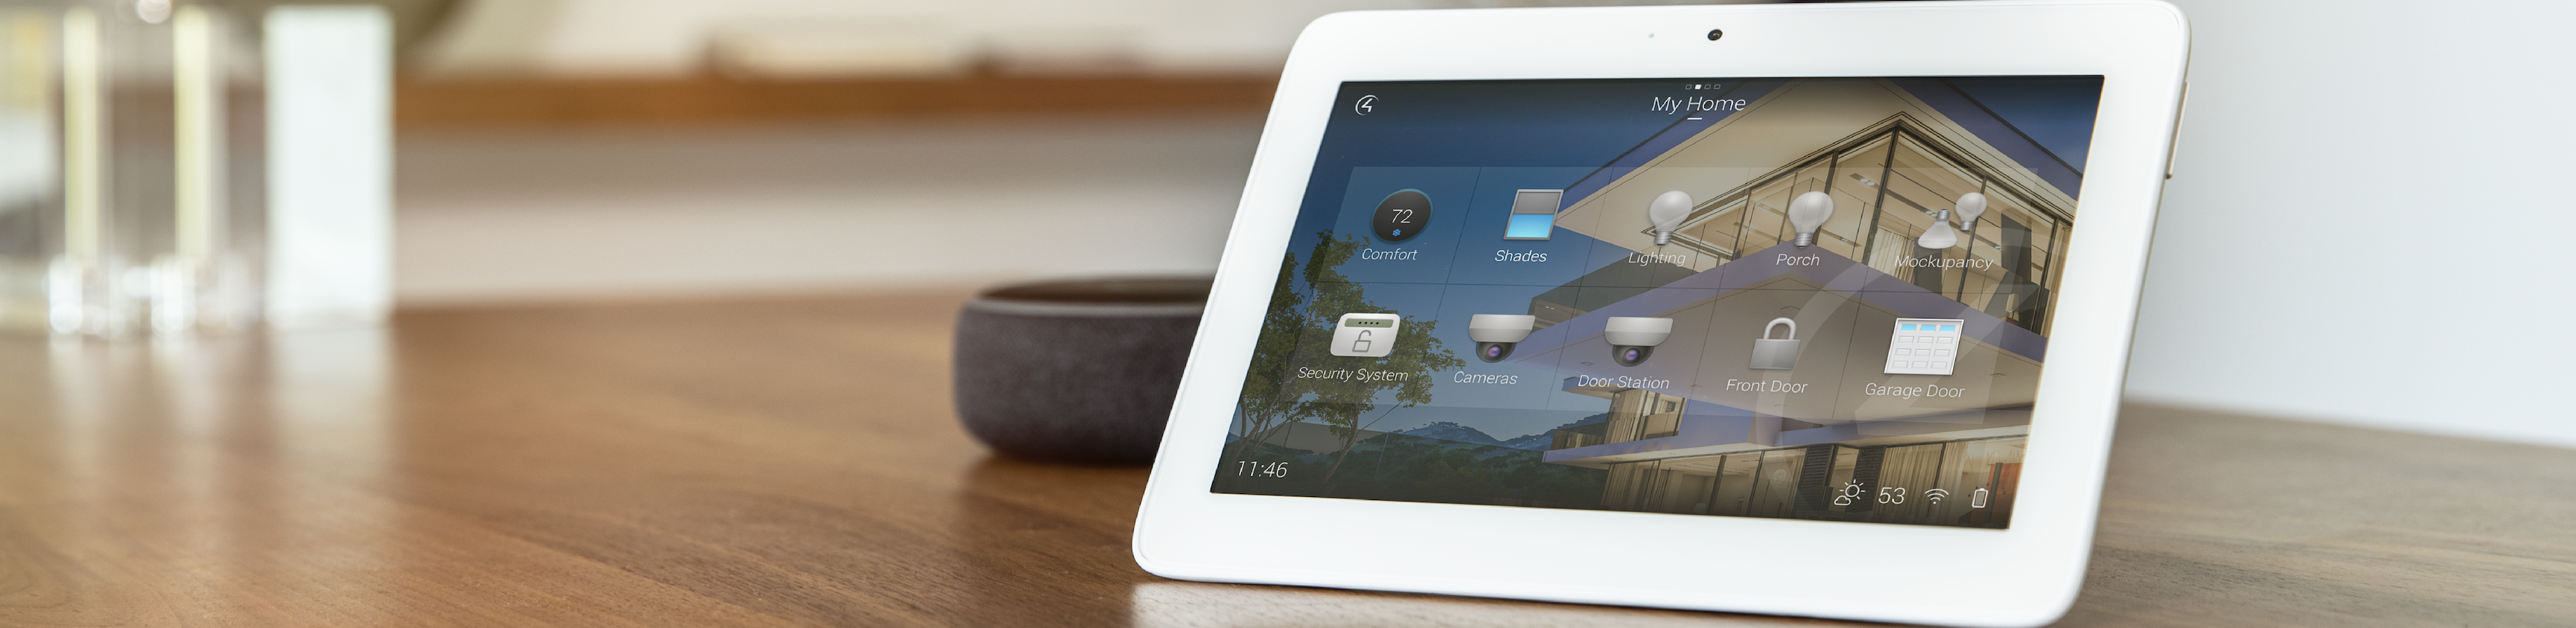 Home Automation image with control4 iPad